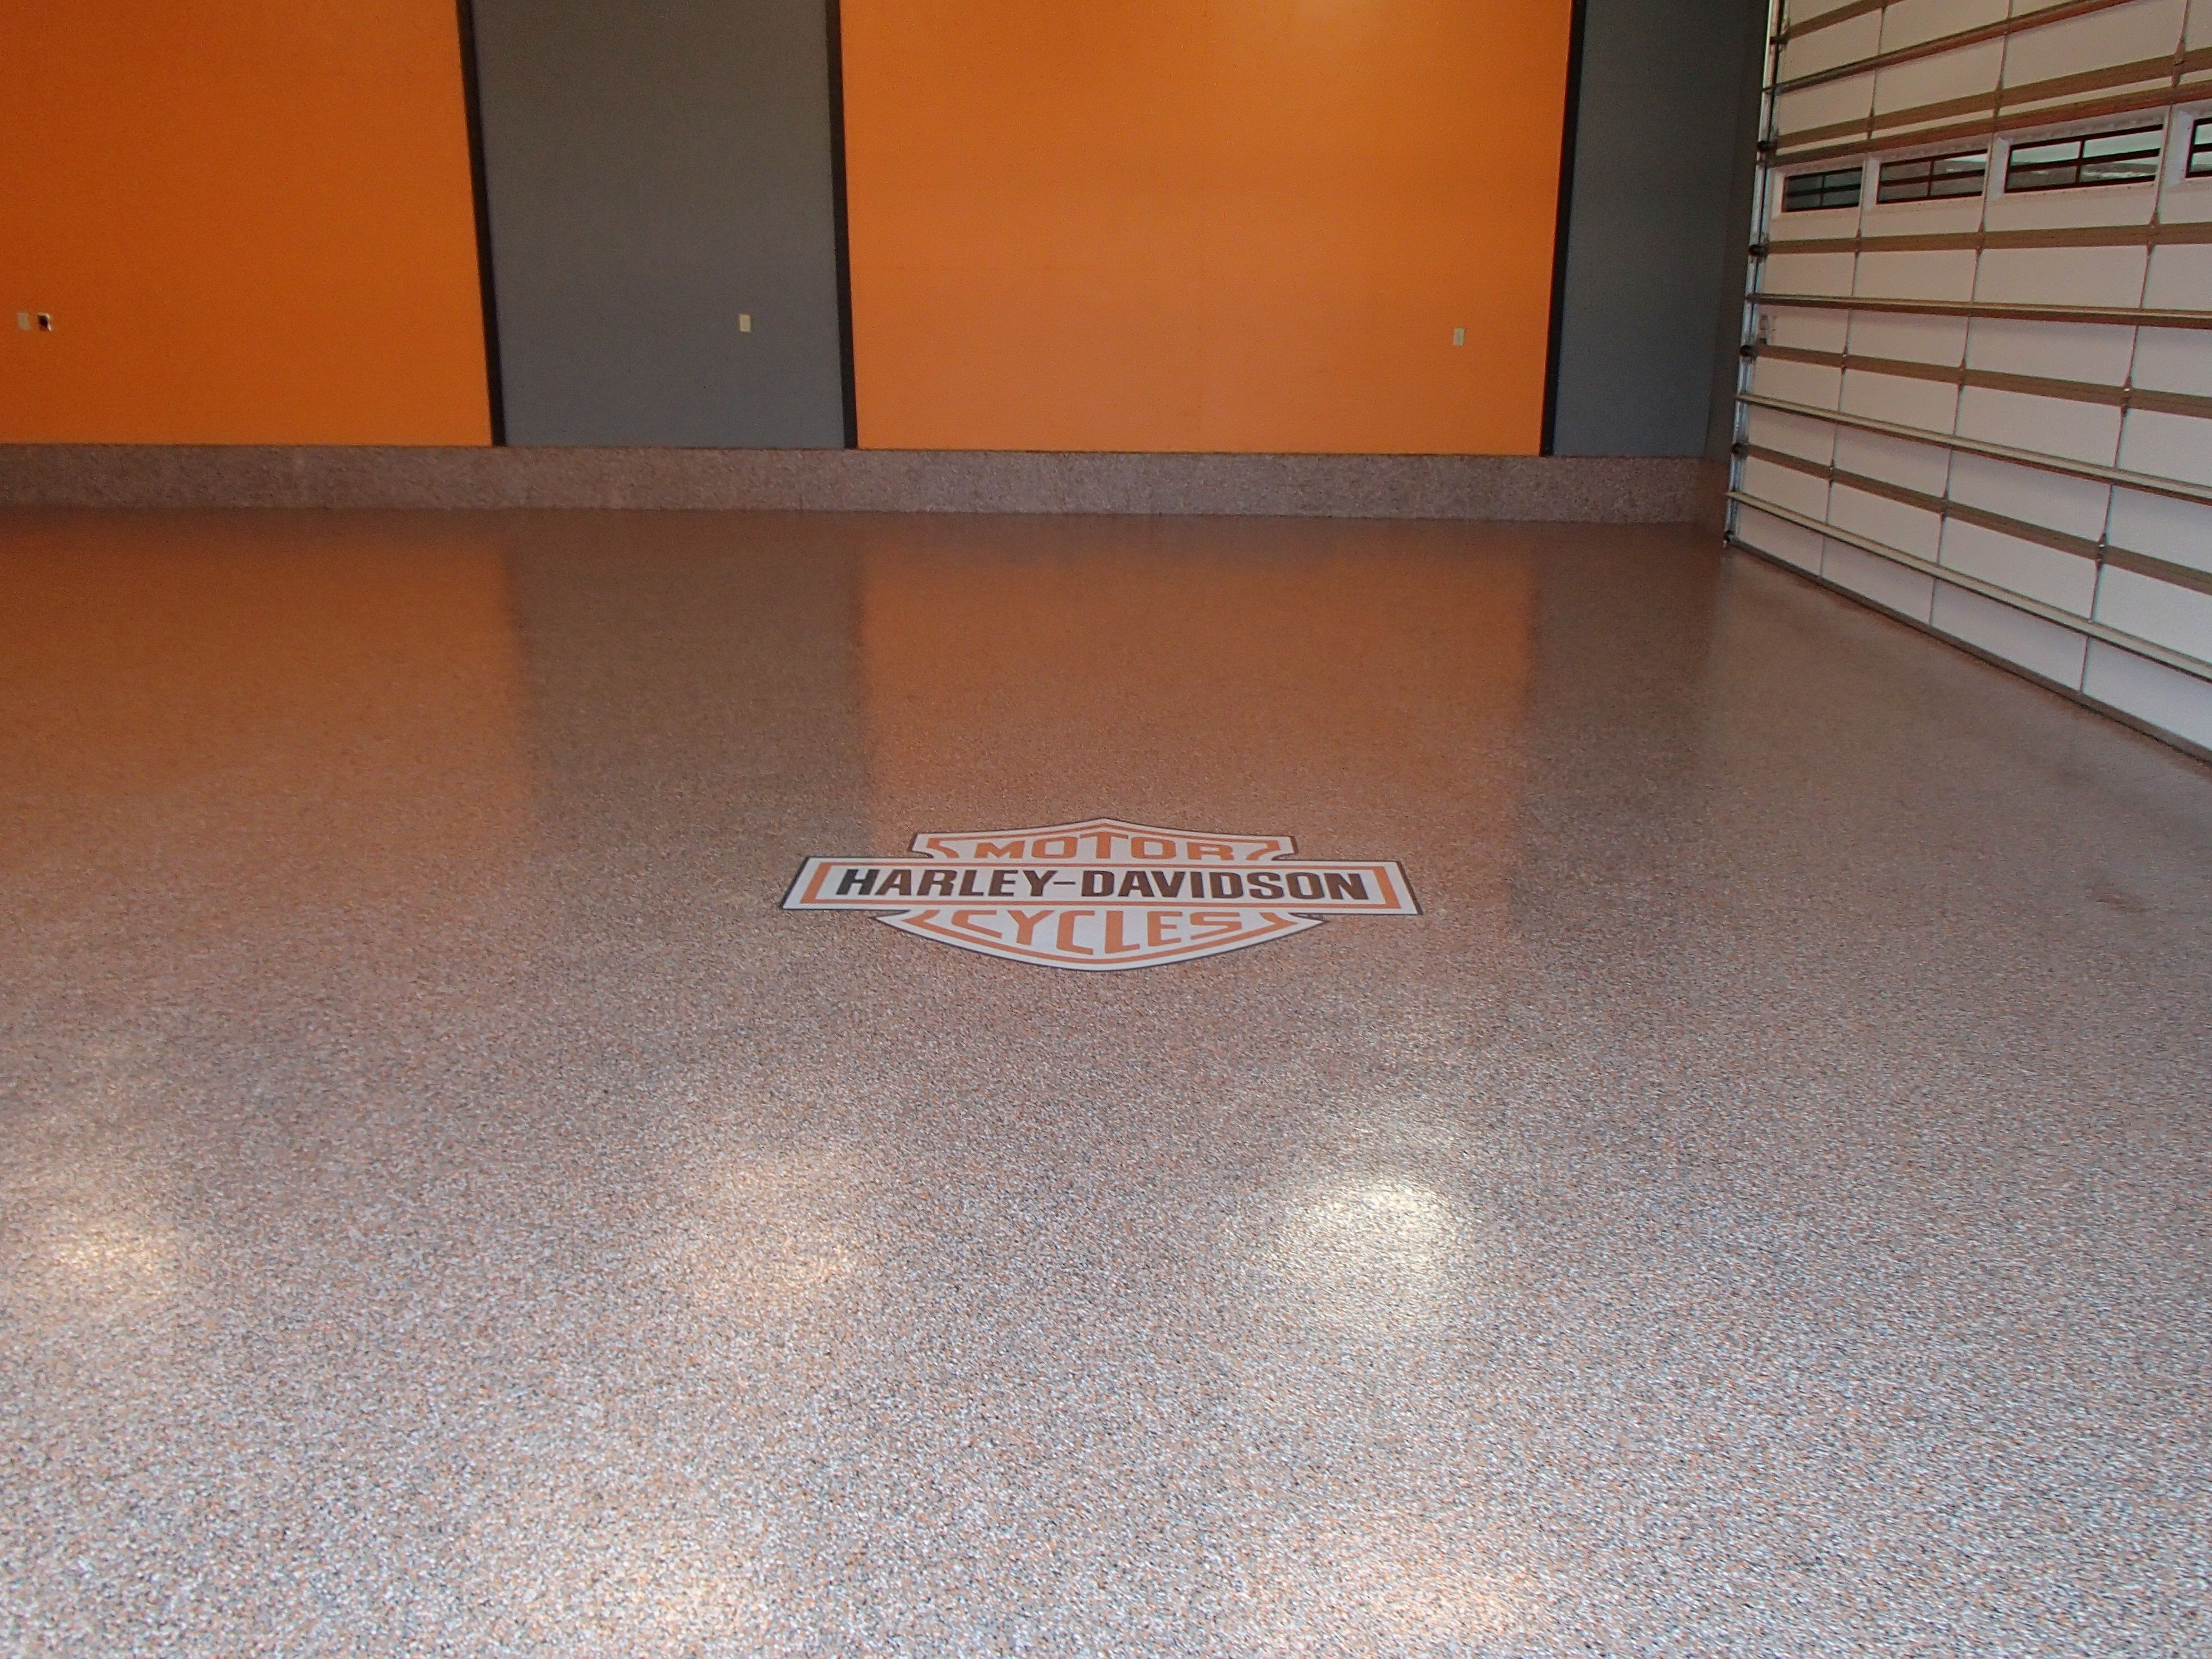 garage decoration of with flooring manager epoxy more latest portable types floor mobile ipad on floors architecture fantastic be and depot android design picture incredible advisor online best app lowes get information home